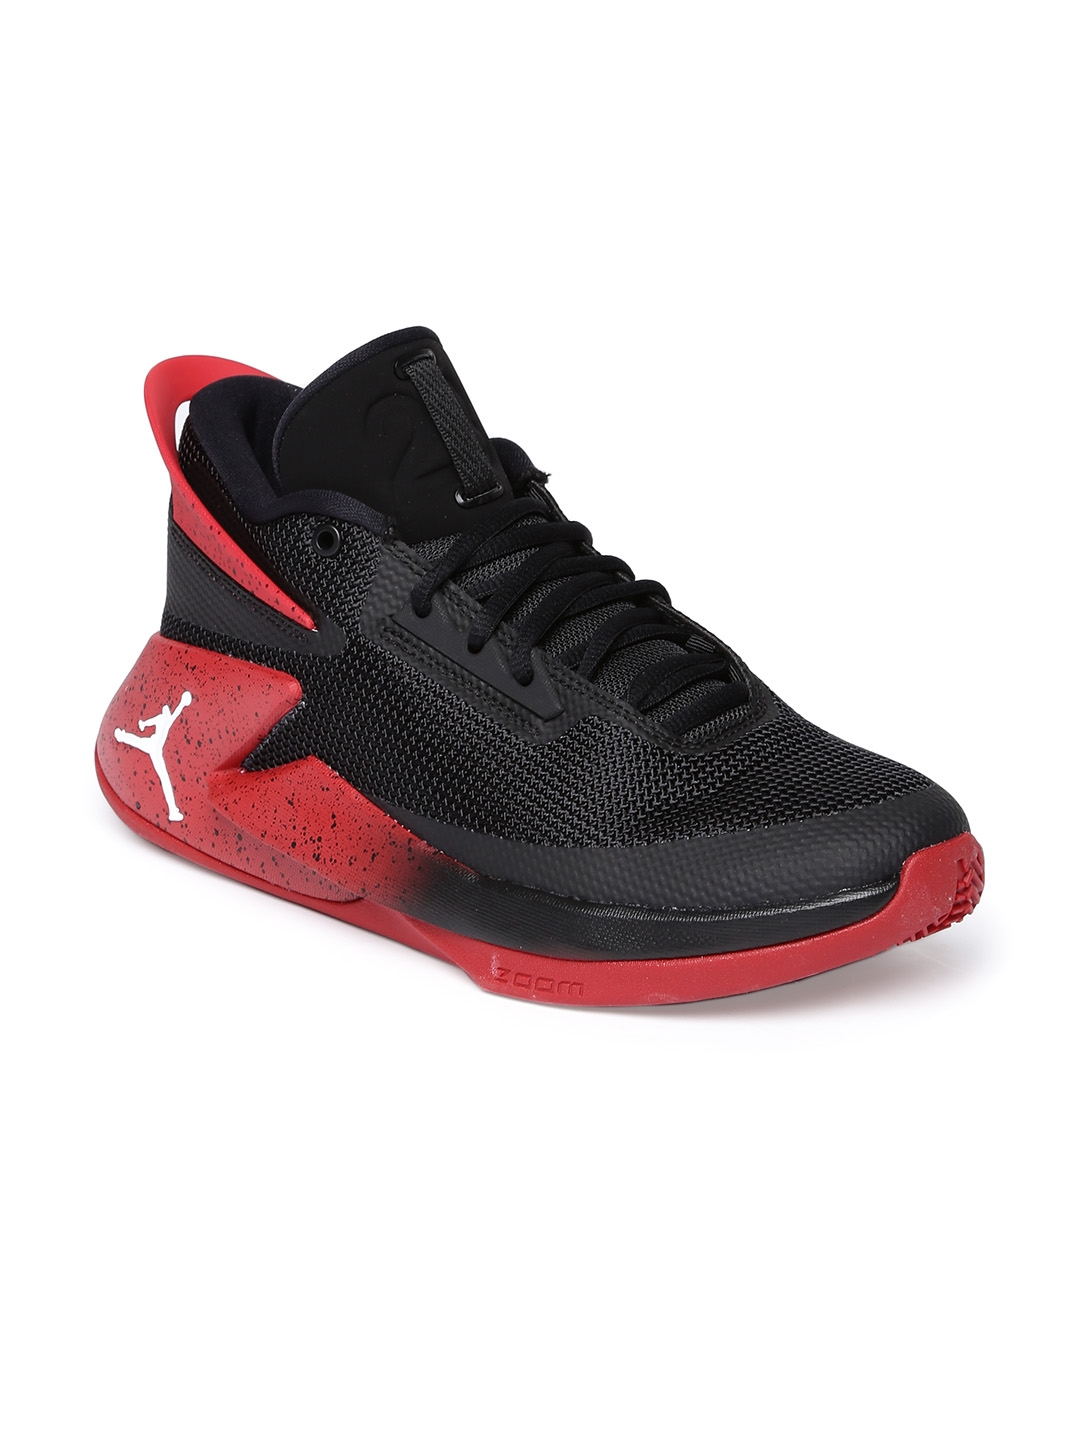 68bfb3003703 Buy Nike Men Black   Red Jordan Fly Lockdown Basketball Shoes ...